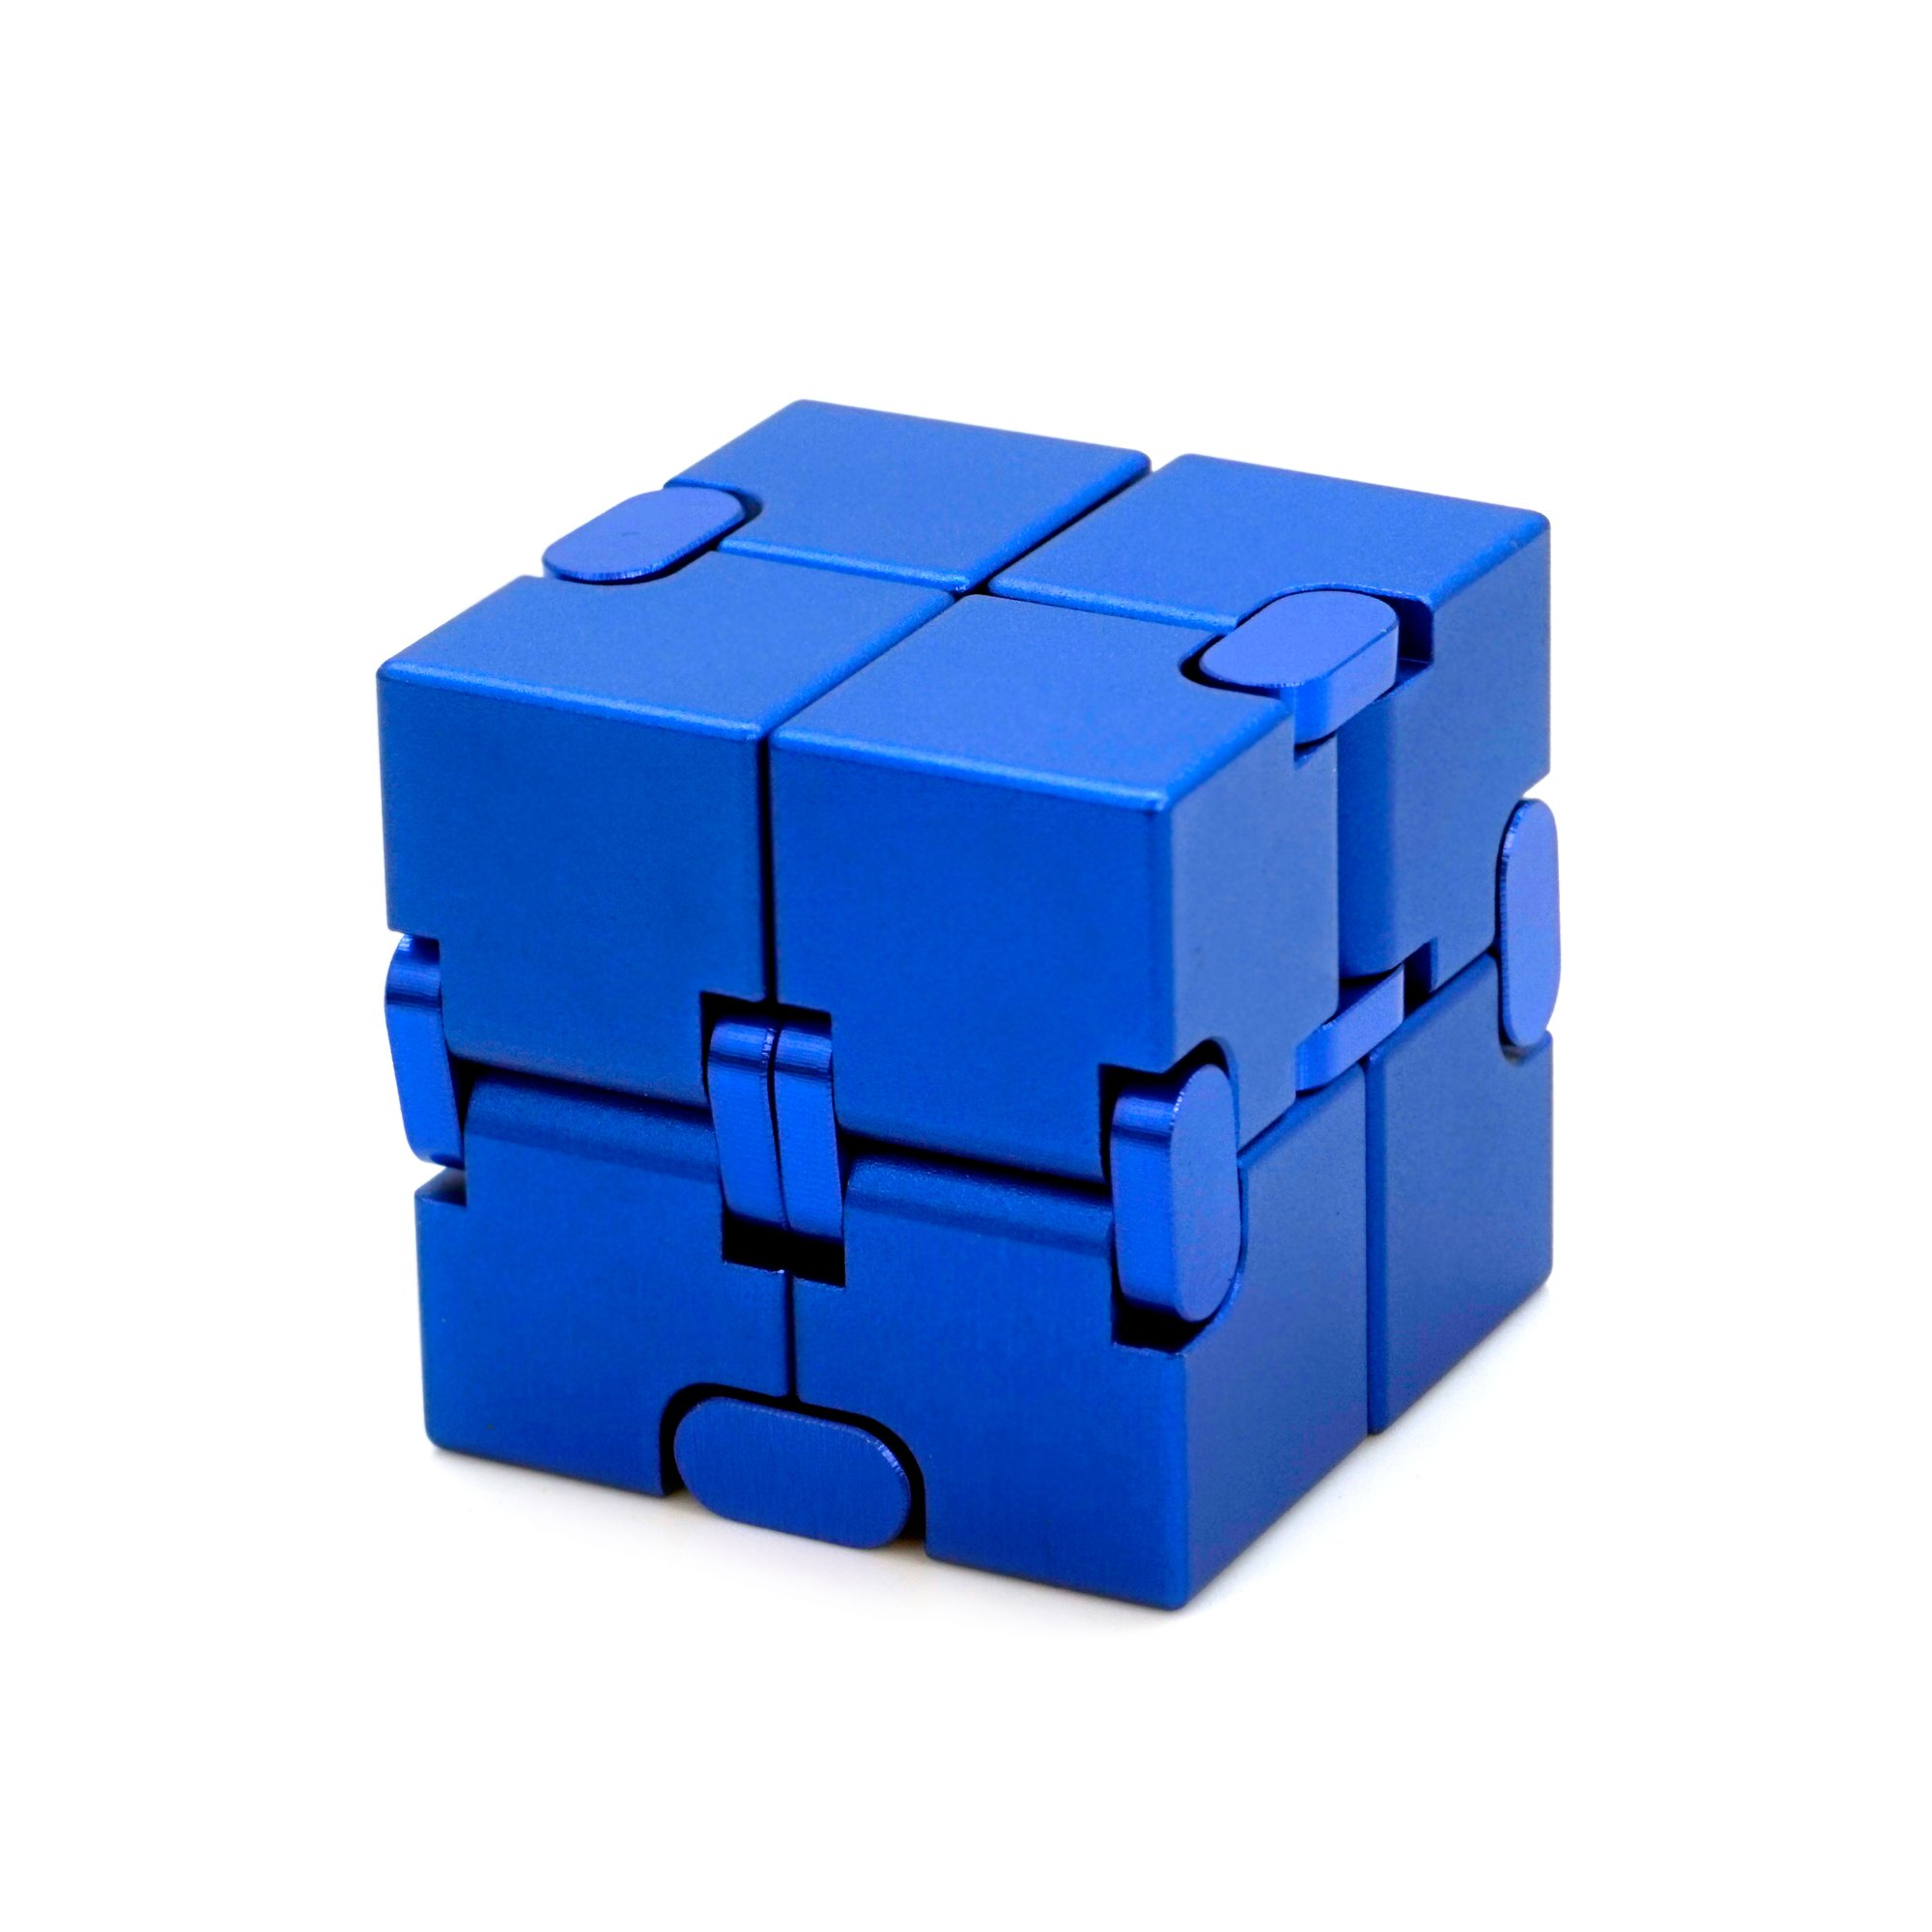 Gazeto Metal Infinity Cube, Durable Aluminum Alloy Decompression Toys, Pressure Reduction Educational Toys Stress Relief Toy Games Square Cube for Adult and Children Blue